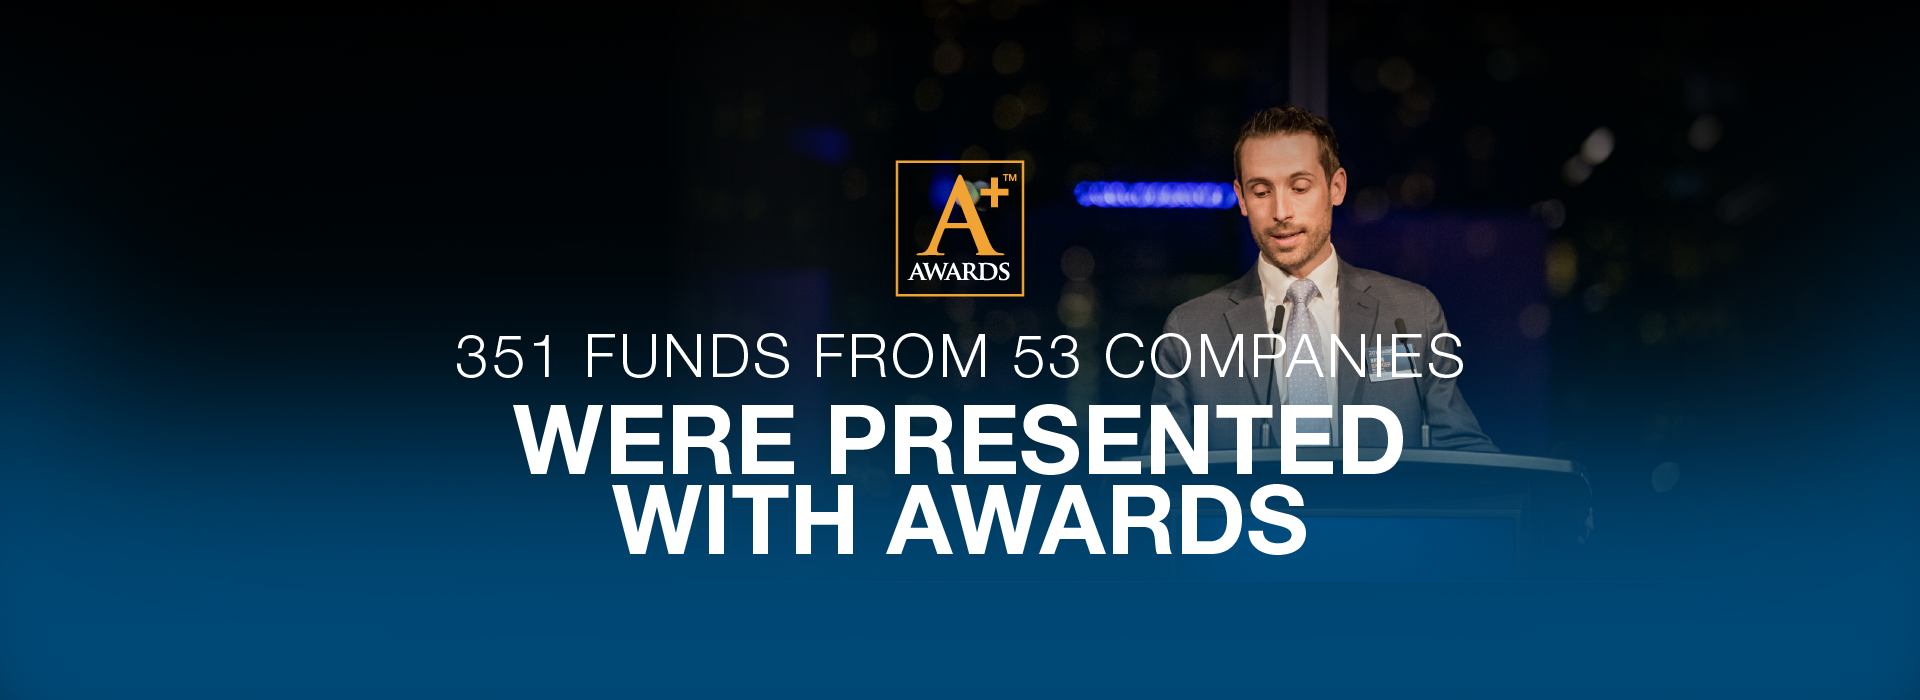 last year 274 FUNDS FROM 60 COMPANIES WERE PRESENTED WITH AWARDS